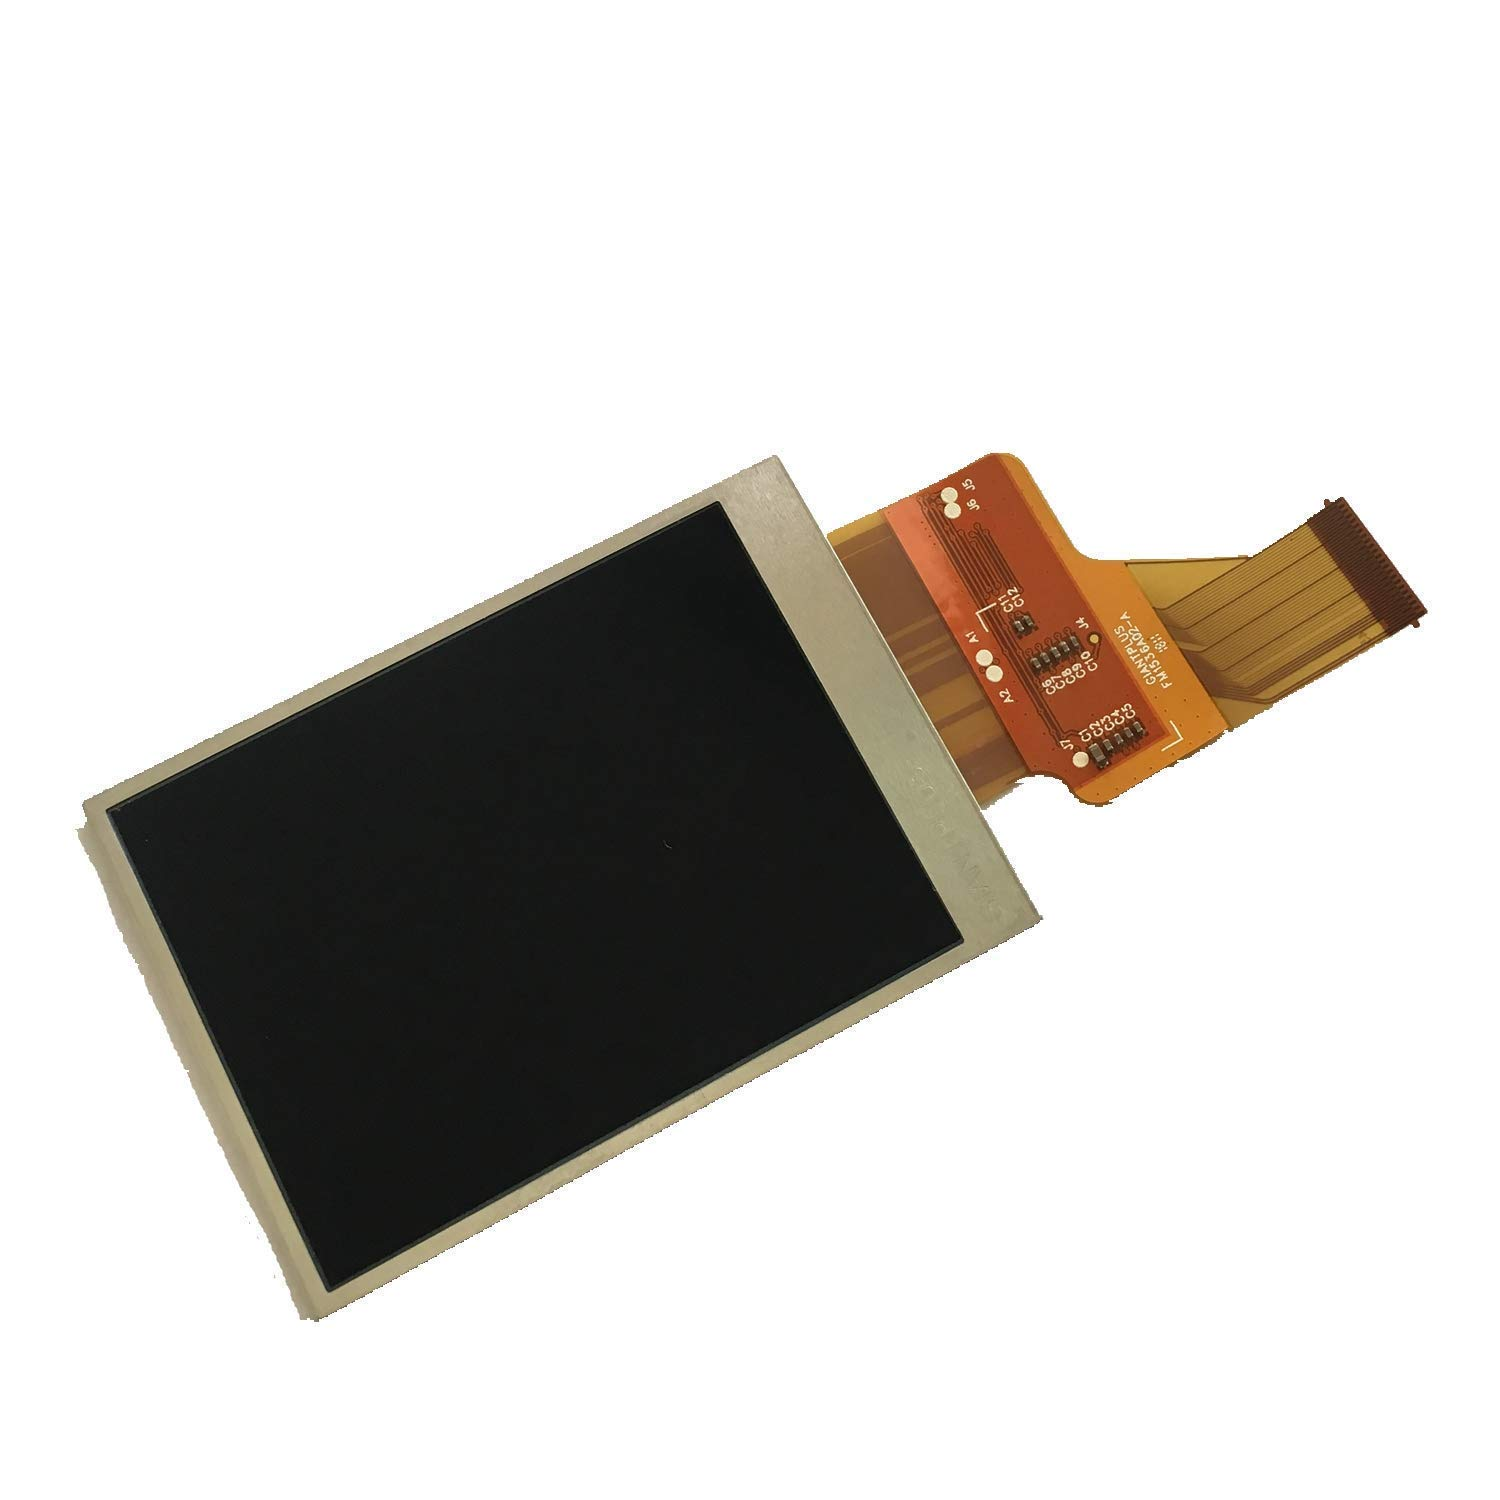 New LCD Display Replacement Screen For Nikon Coolpix L840 Digital Camera Repair Part by MM